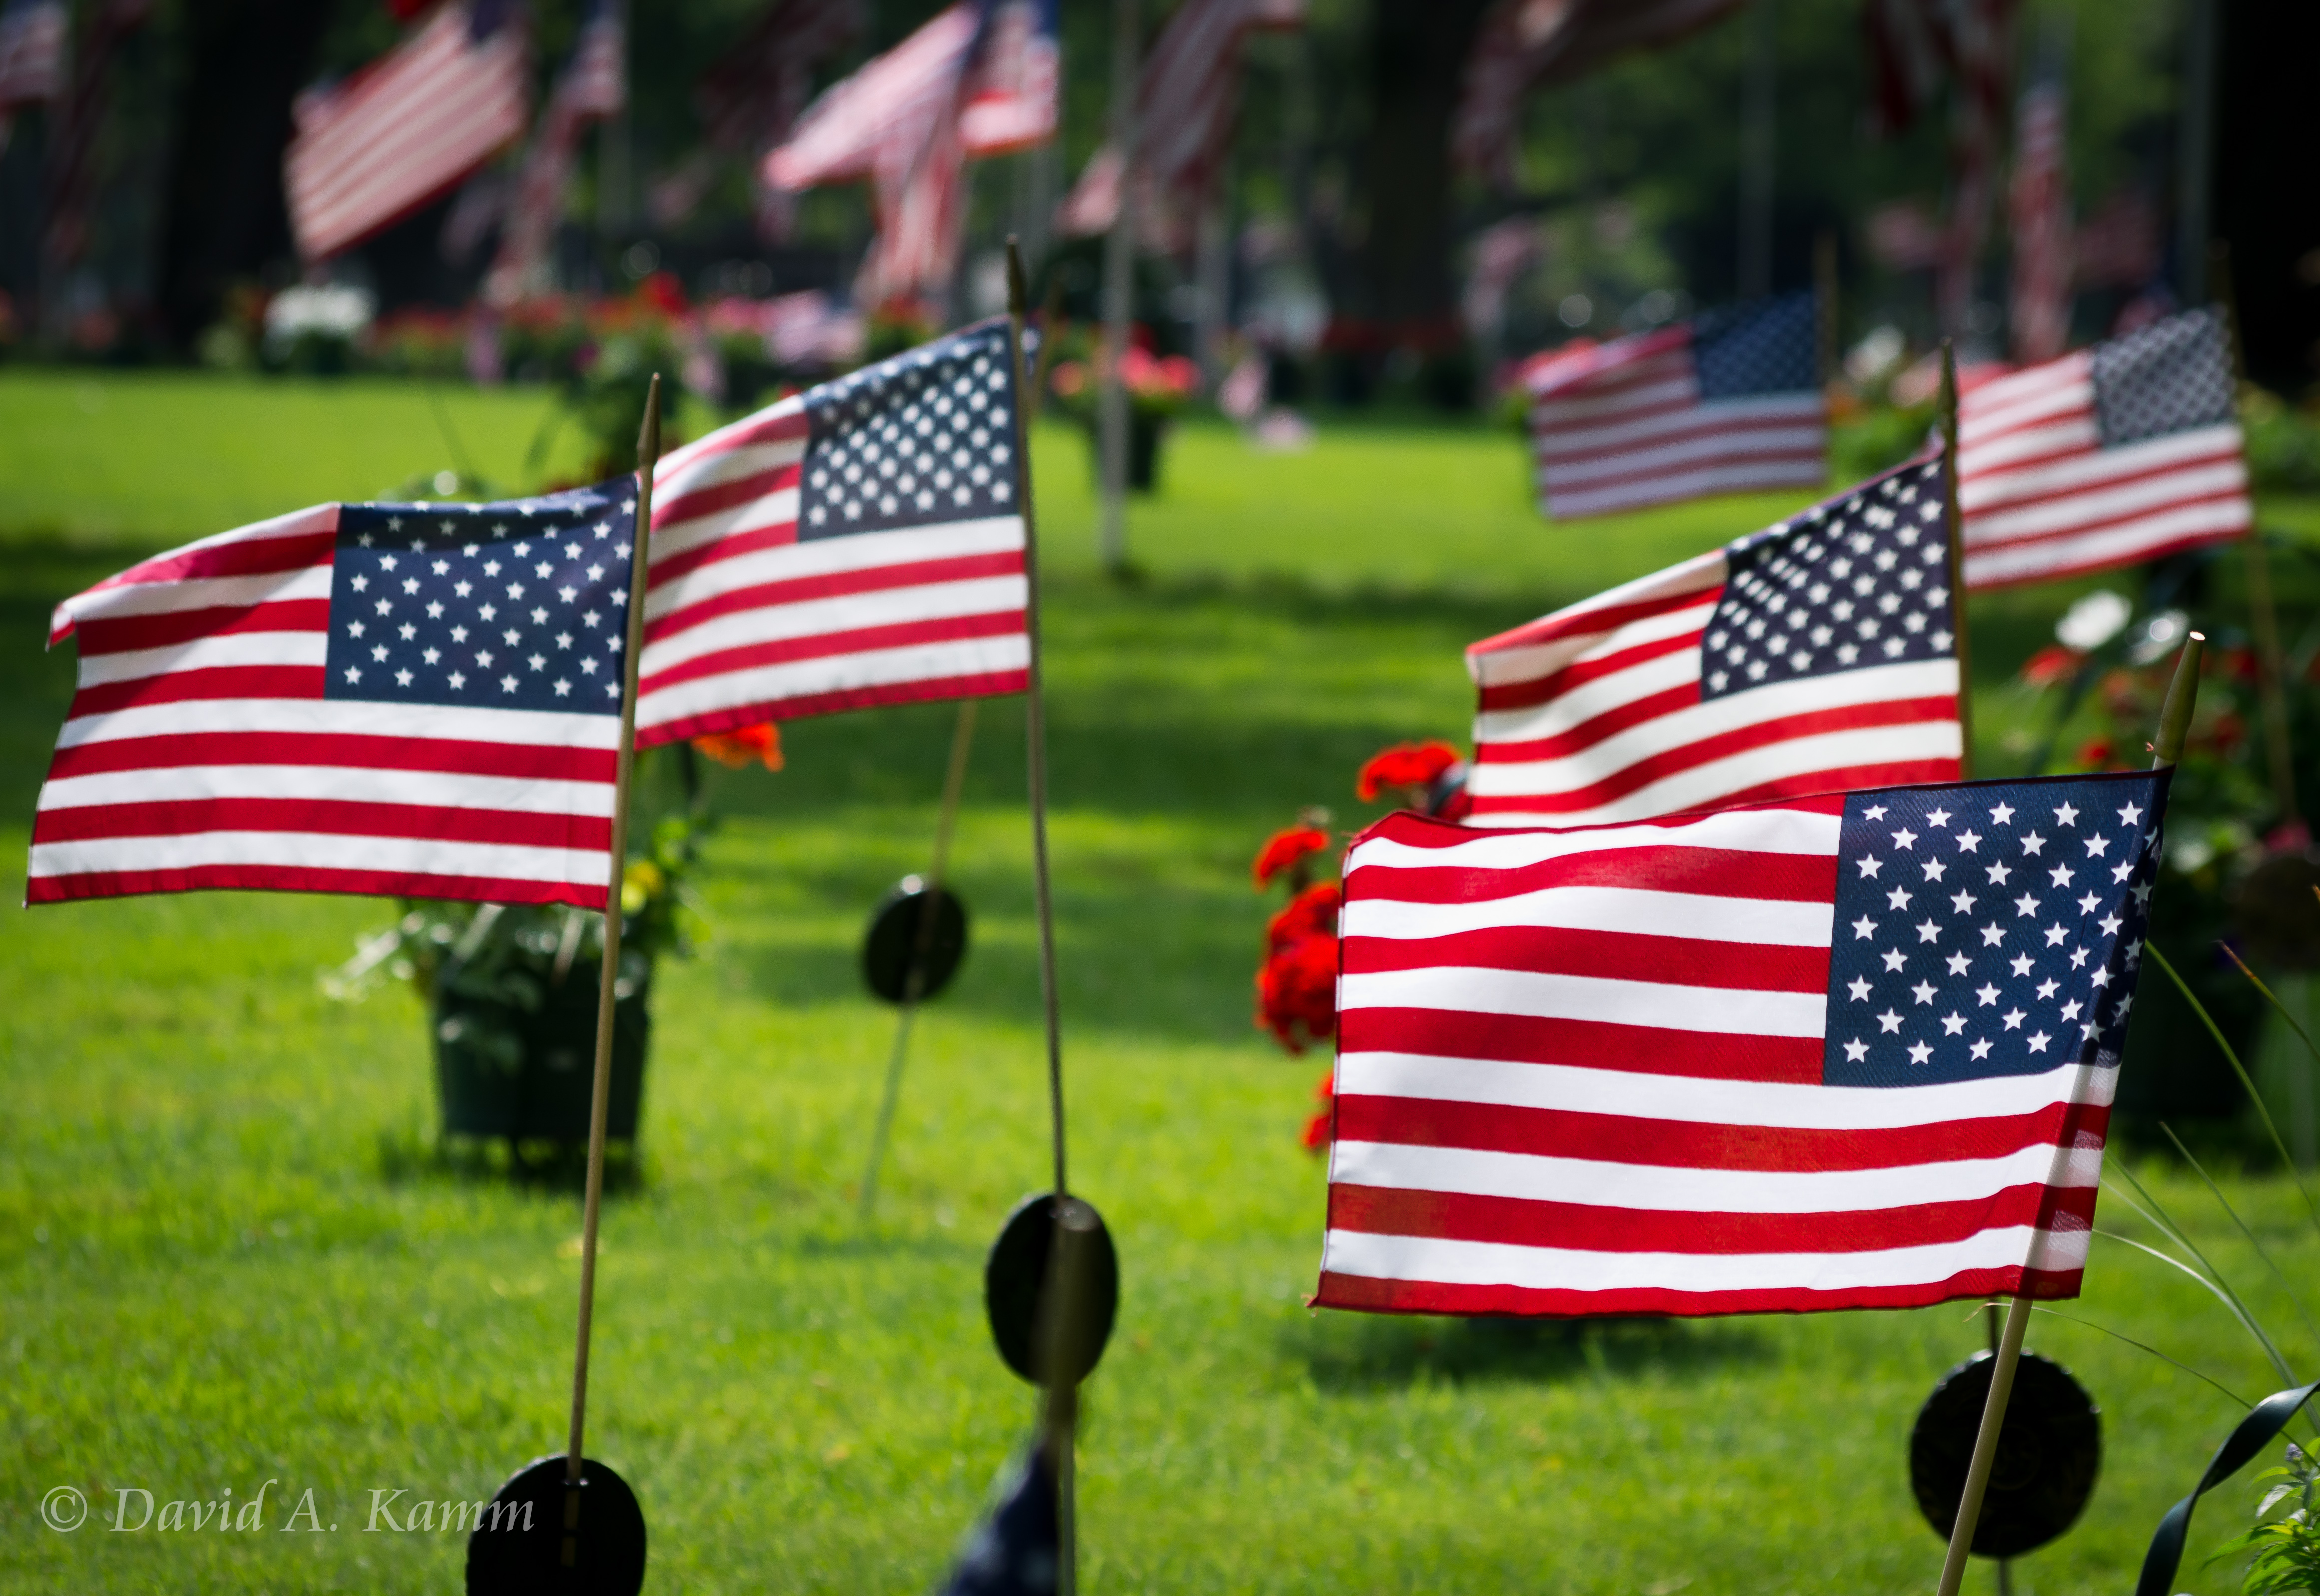 Image: Memorial Day Cemetery Flags